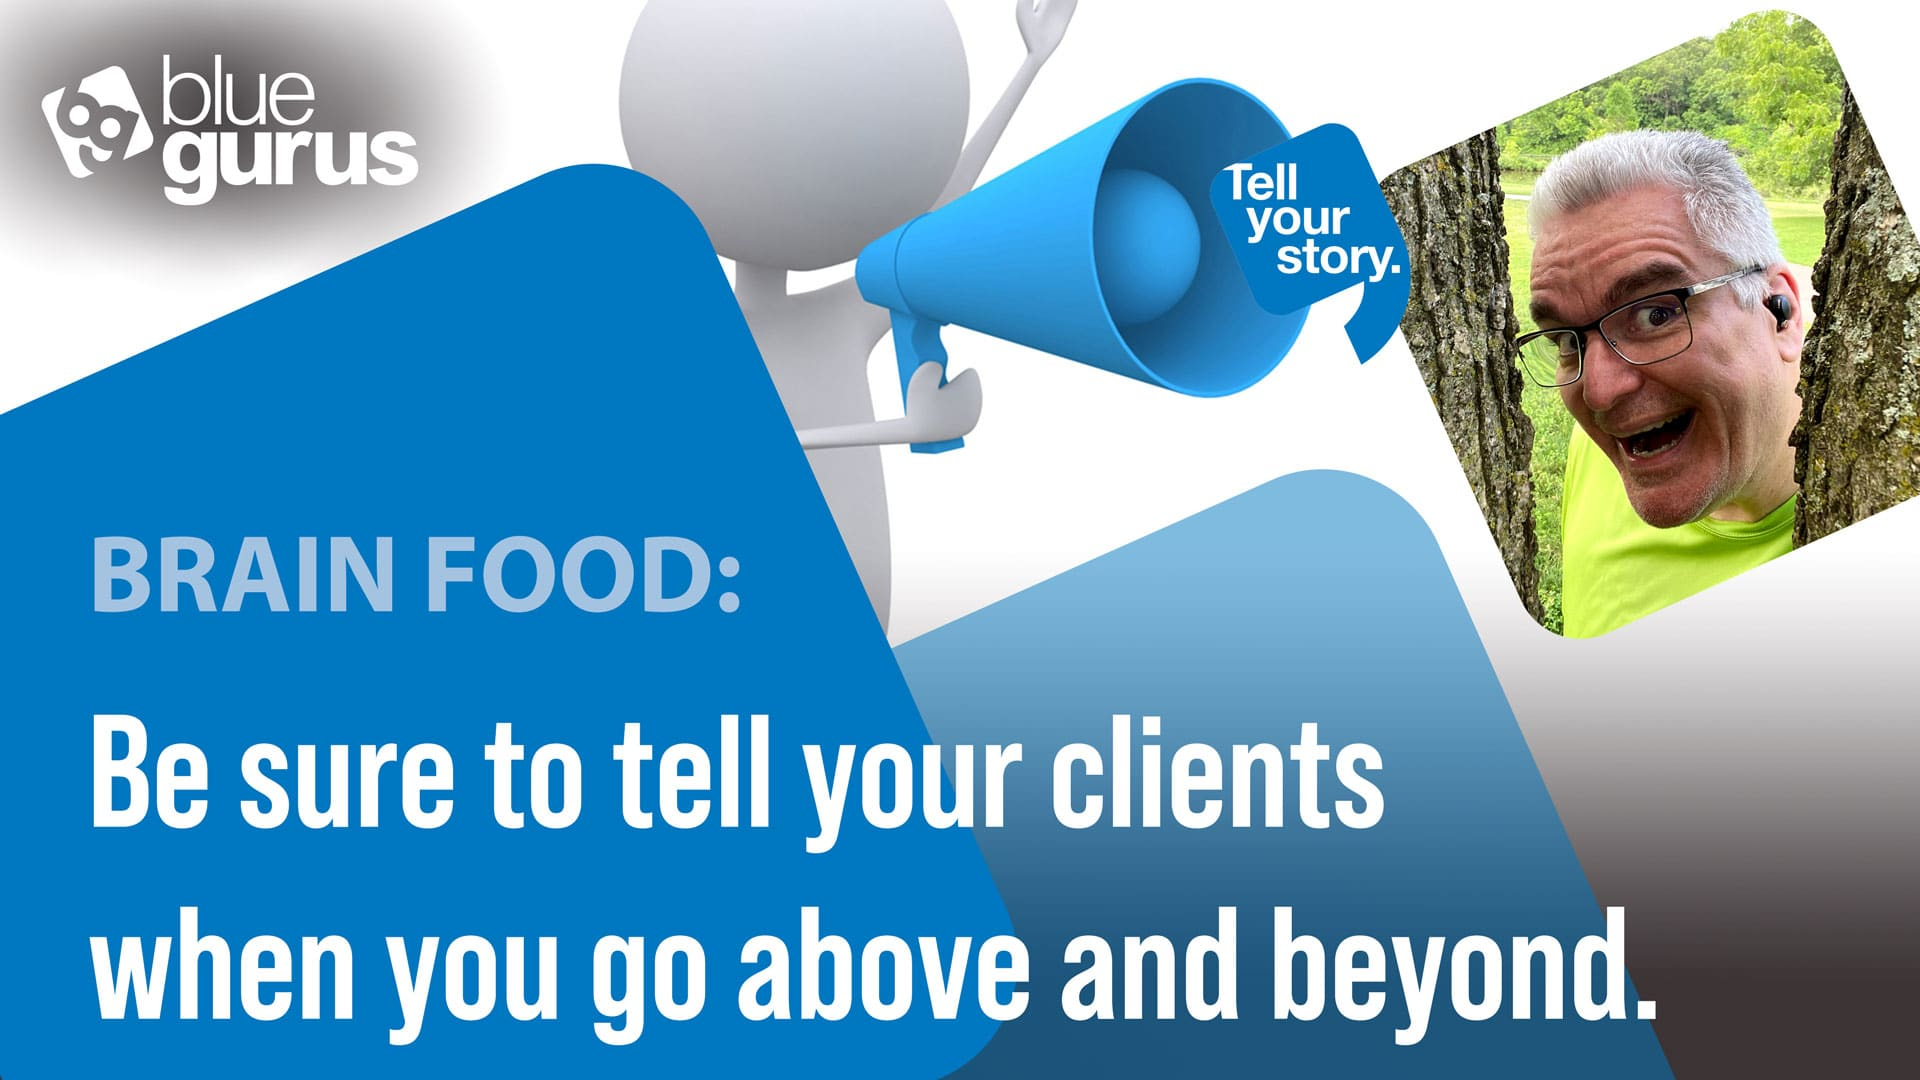 Tell your clients when you go above and beyond.